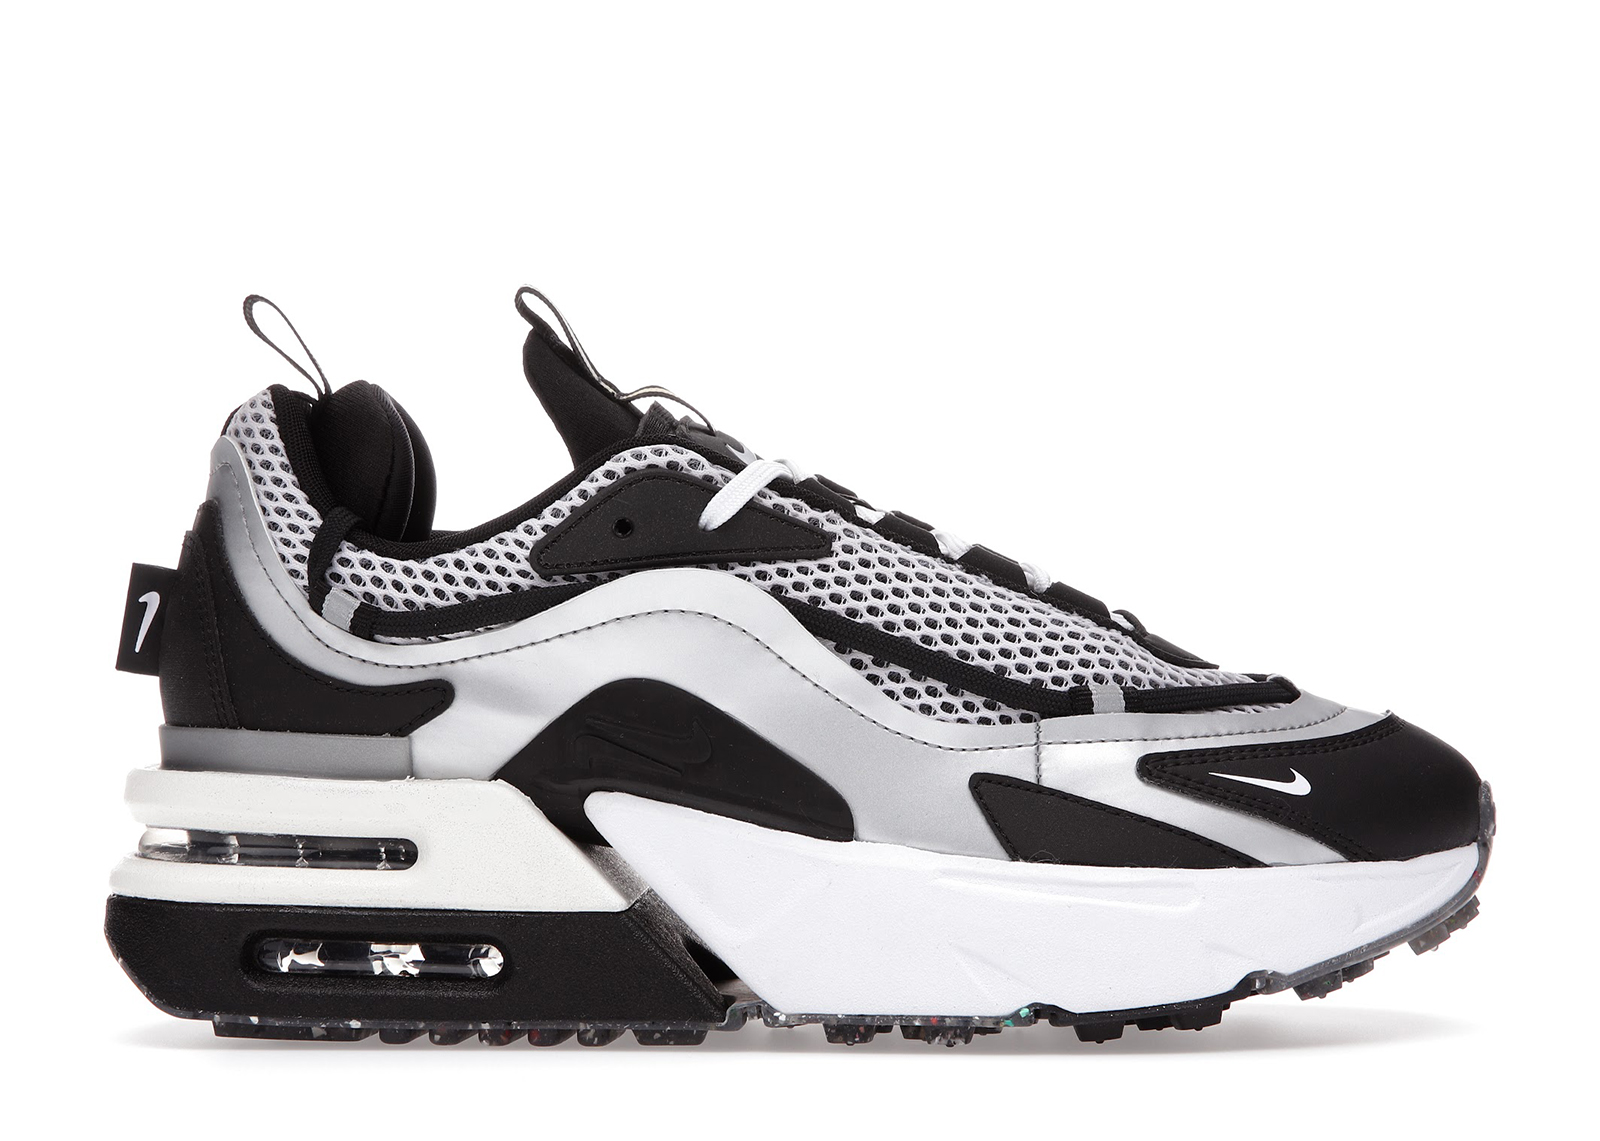 Acheter Nike Air Max Other Chaussures et sneakers neuves